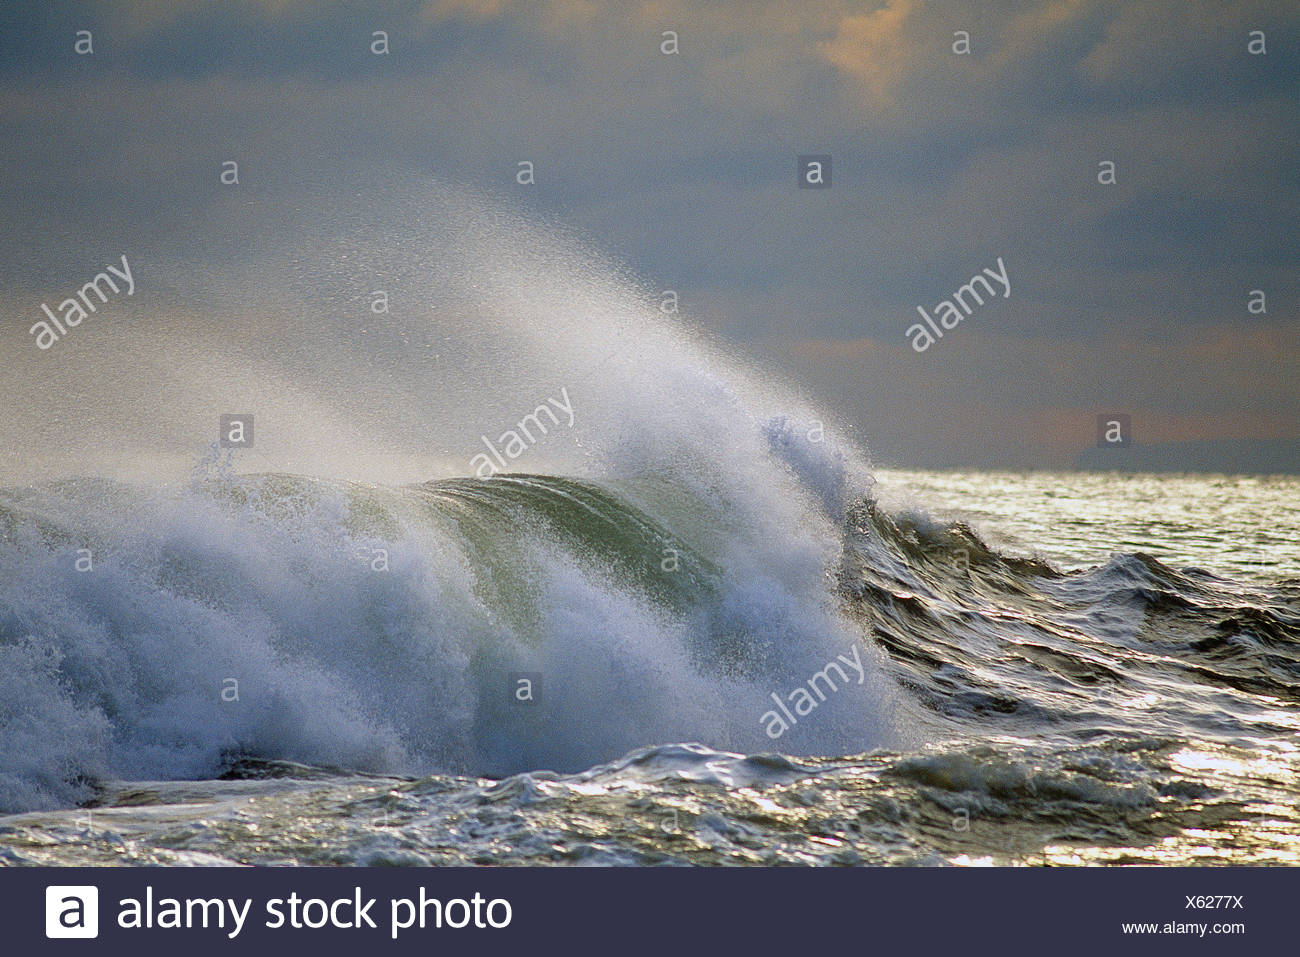 Scenic. Stormy sky over the Atlantic ocean with large wave breaking. - Stock Image